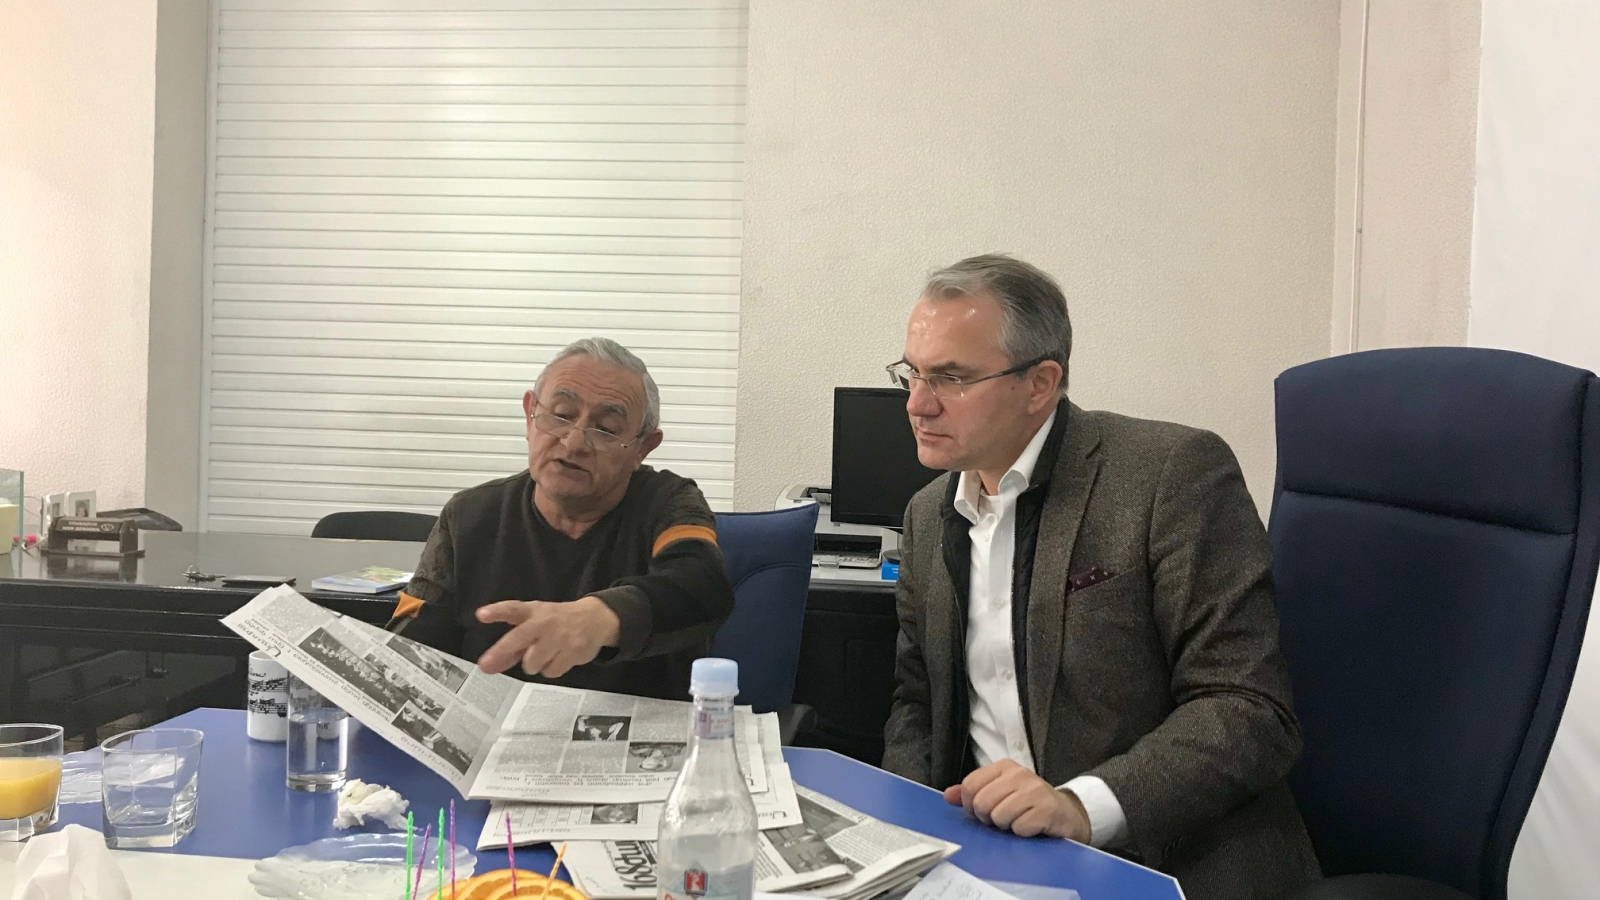 Media Hub trainer Veselin Vačkov during follow-up meetings with Armenian on-line media 'Aravot.am' in Yerevan